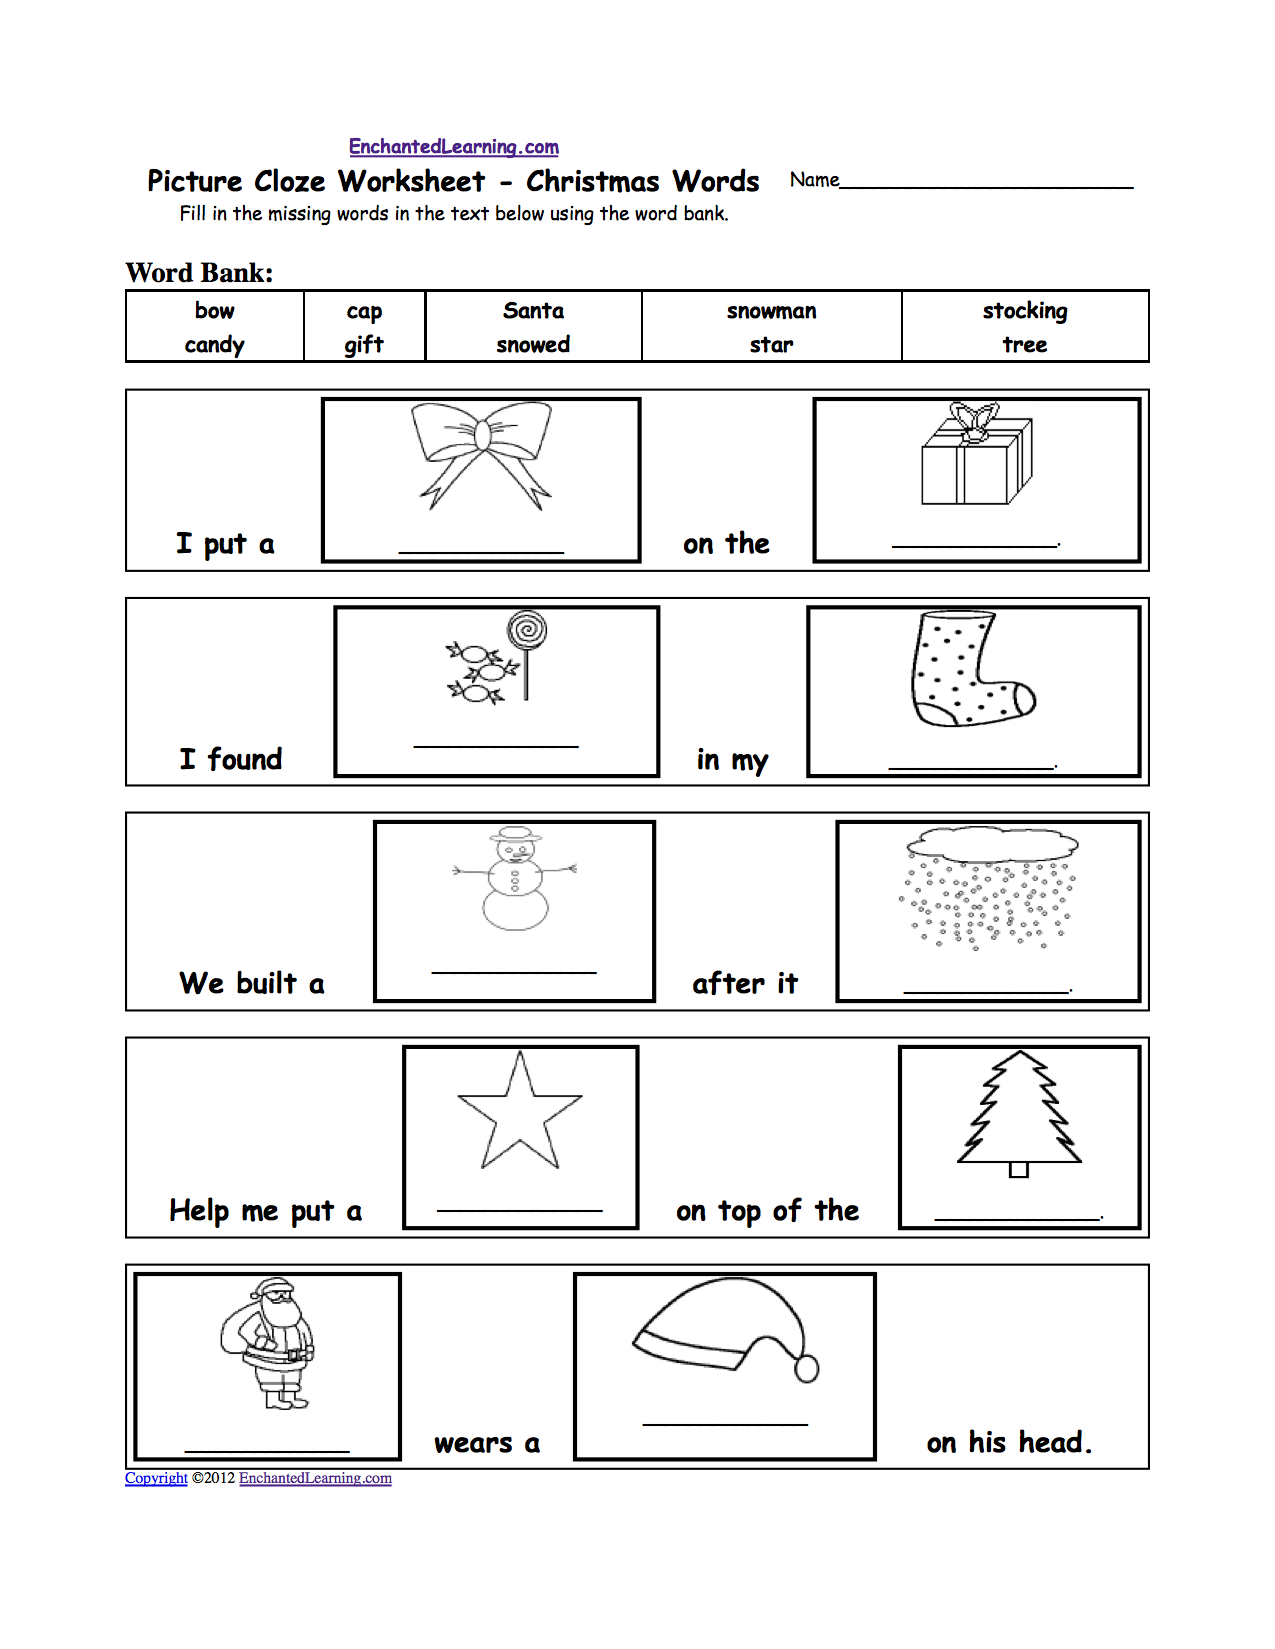 Picture Cloze Worksheet - Holiday And Seasons Words